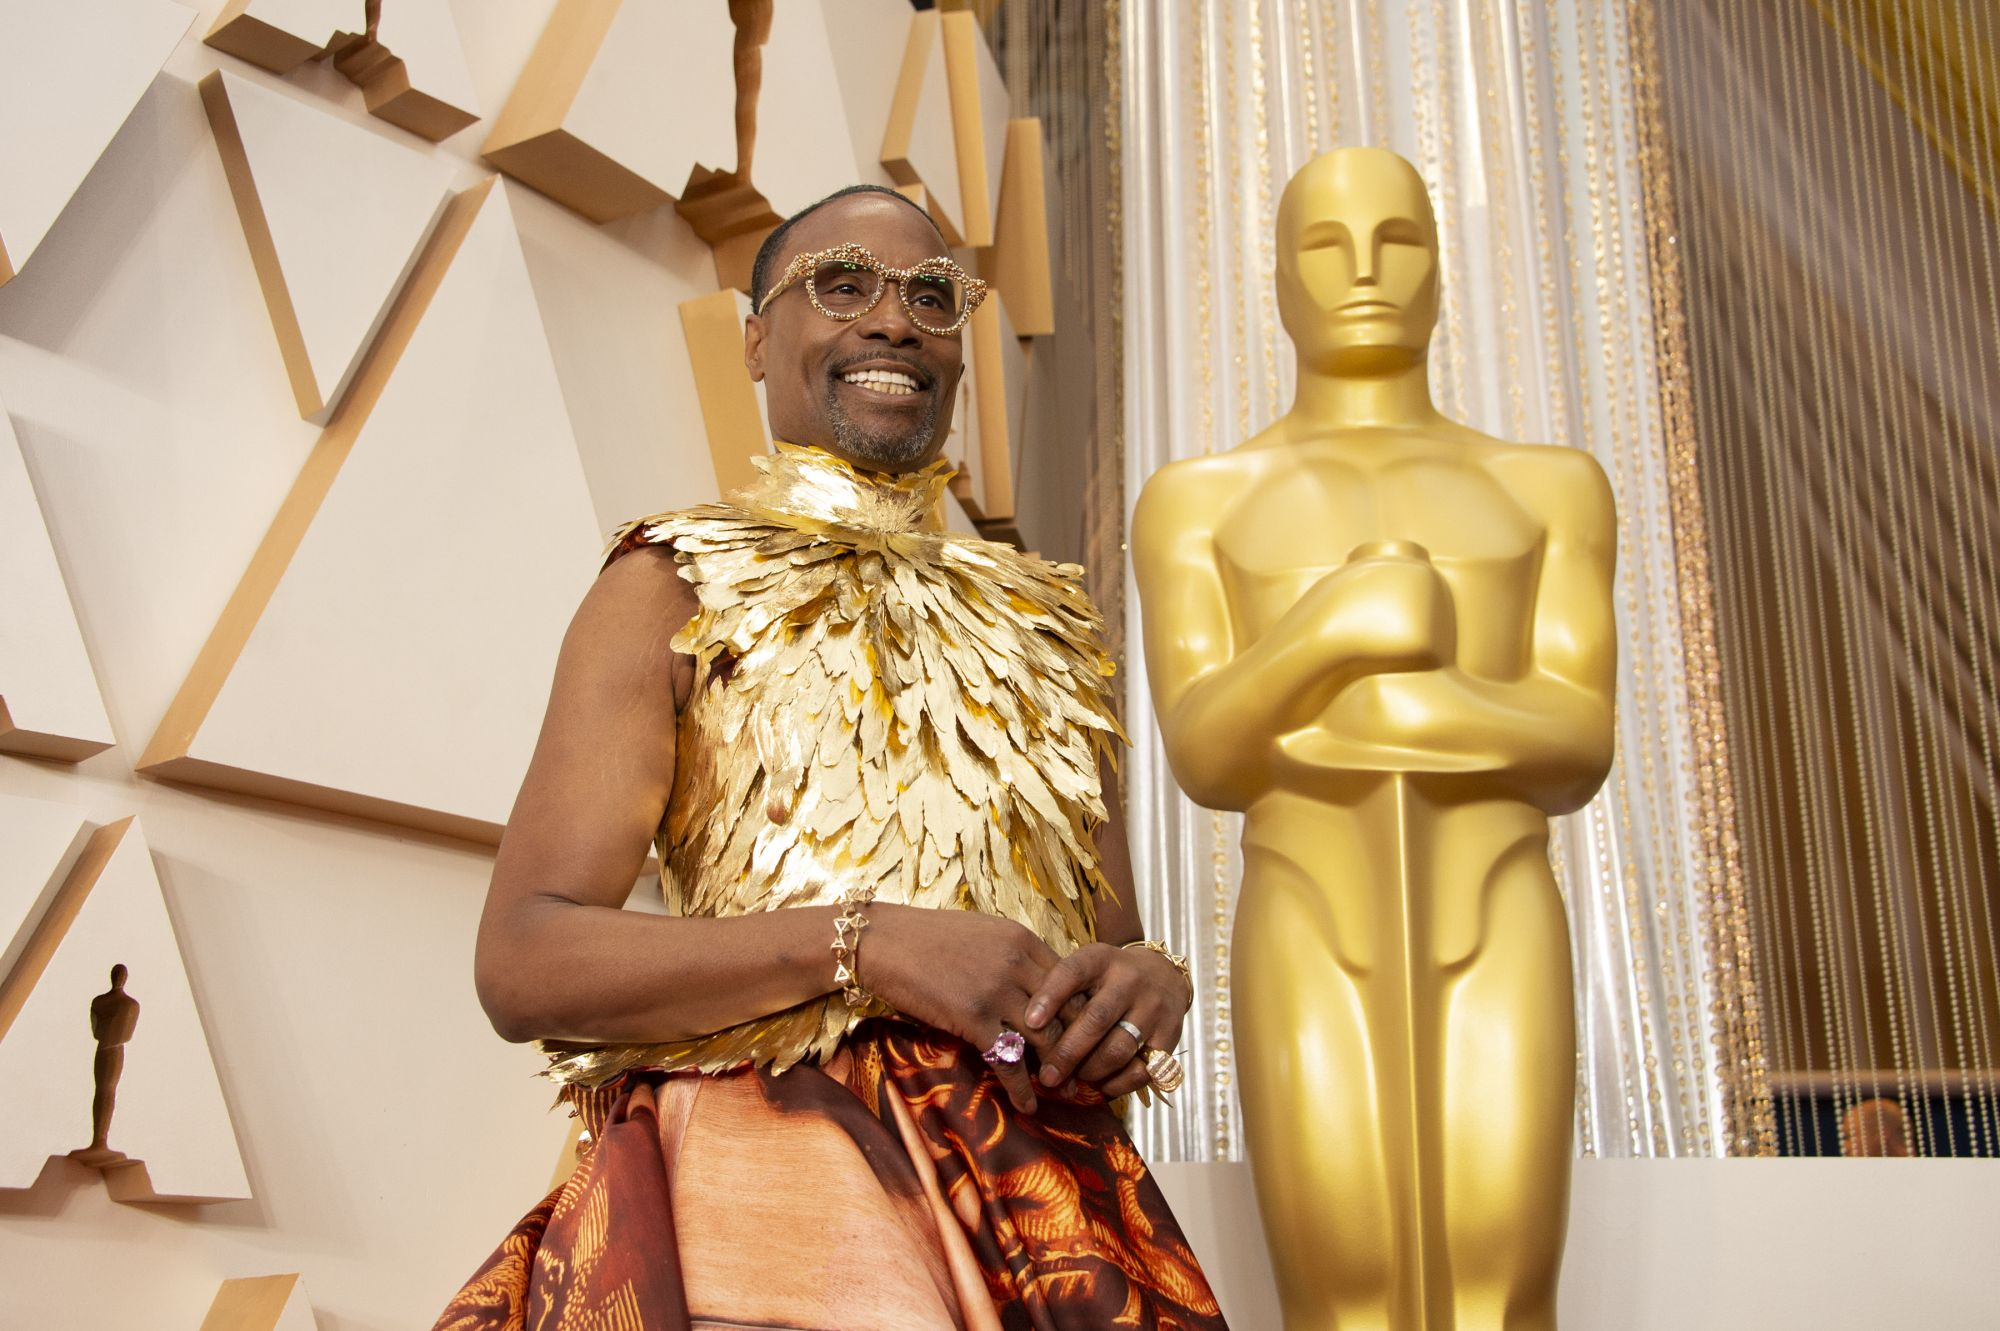 THE OSCARS® - The 92nd Oscars® broadcasts live on Sunday, Feb. 9,2020 at the Dolby Theatre® at Hollywood & Highland Center® in Hollywood and will be televised live on The ABC Television Network at 8:00 p.m. EST/5:00 p.m. PST. (Eric McCandless via Getty Images)BILLY PORTER